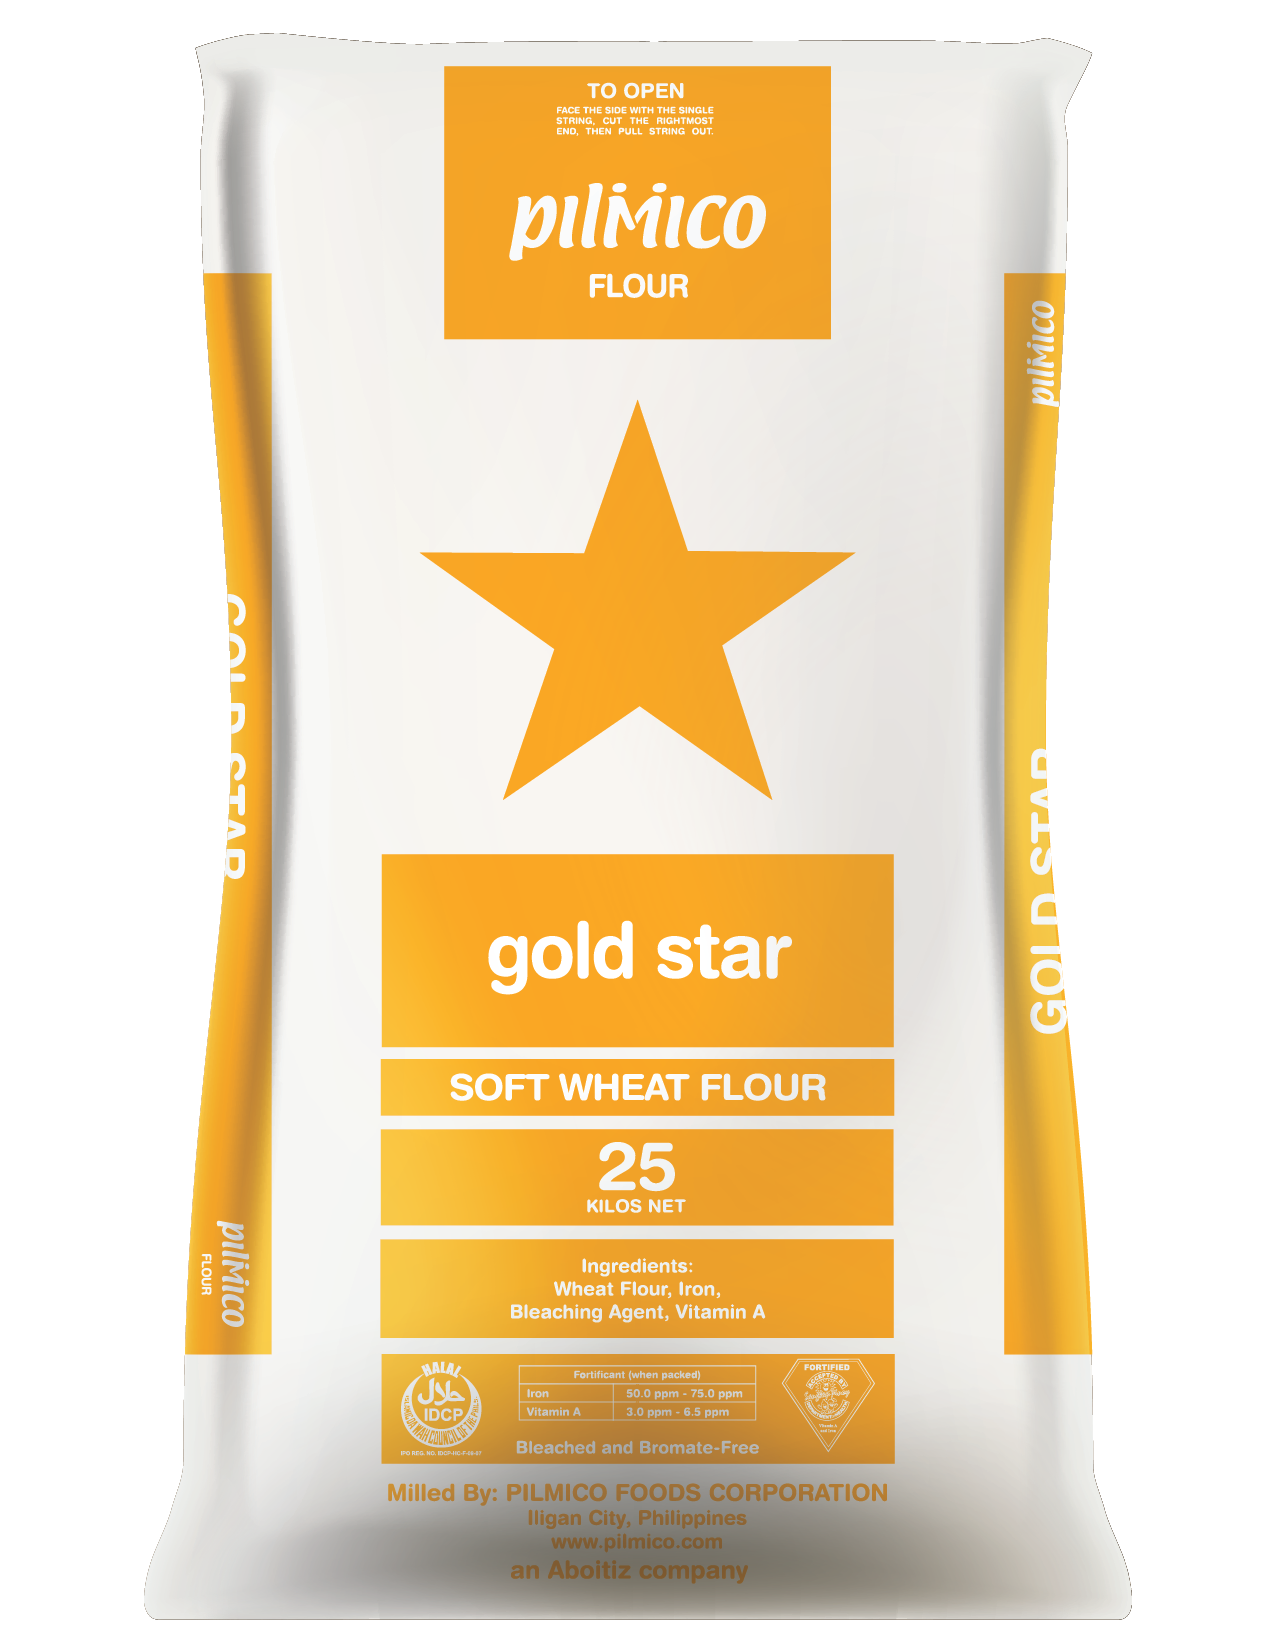 Pilmico Flour Sack 2018 - Gold Star Soft What Flour